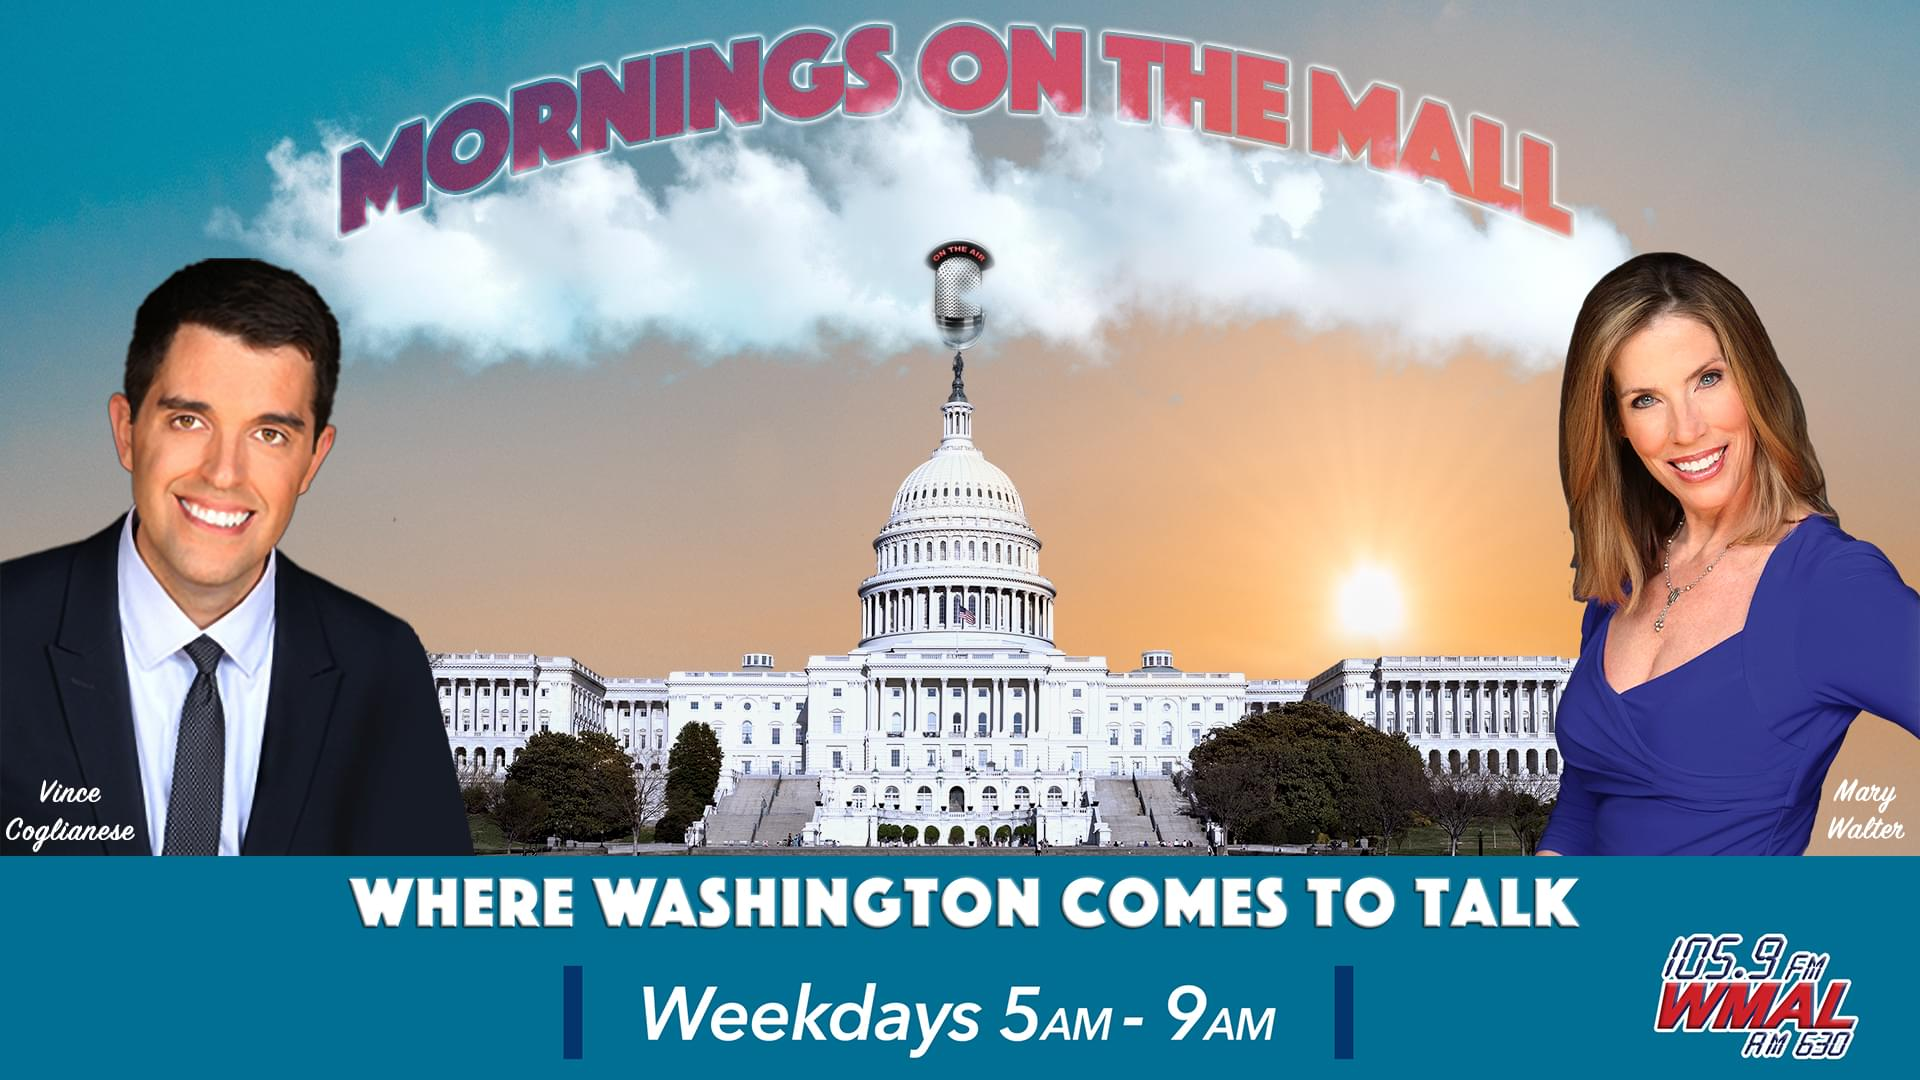 LISTEN: MARK LEVIN Discussed His Upcoming Book Signing On Saturday